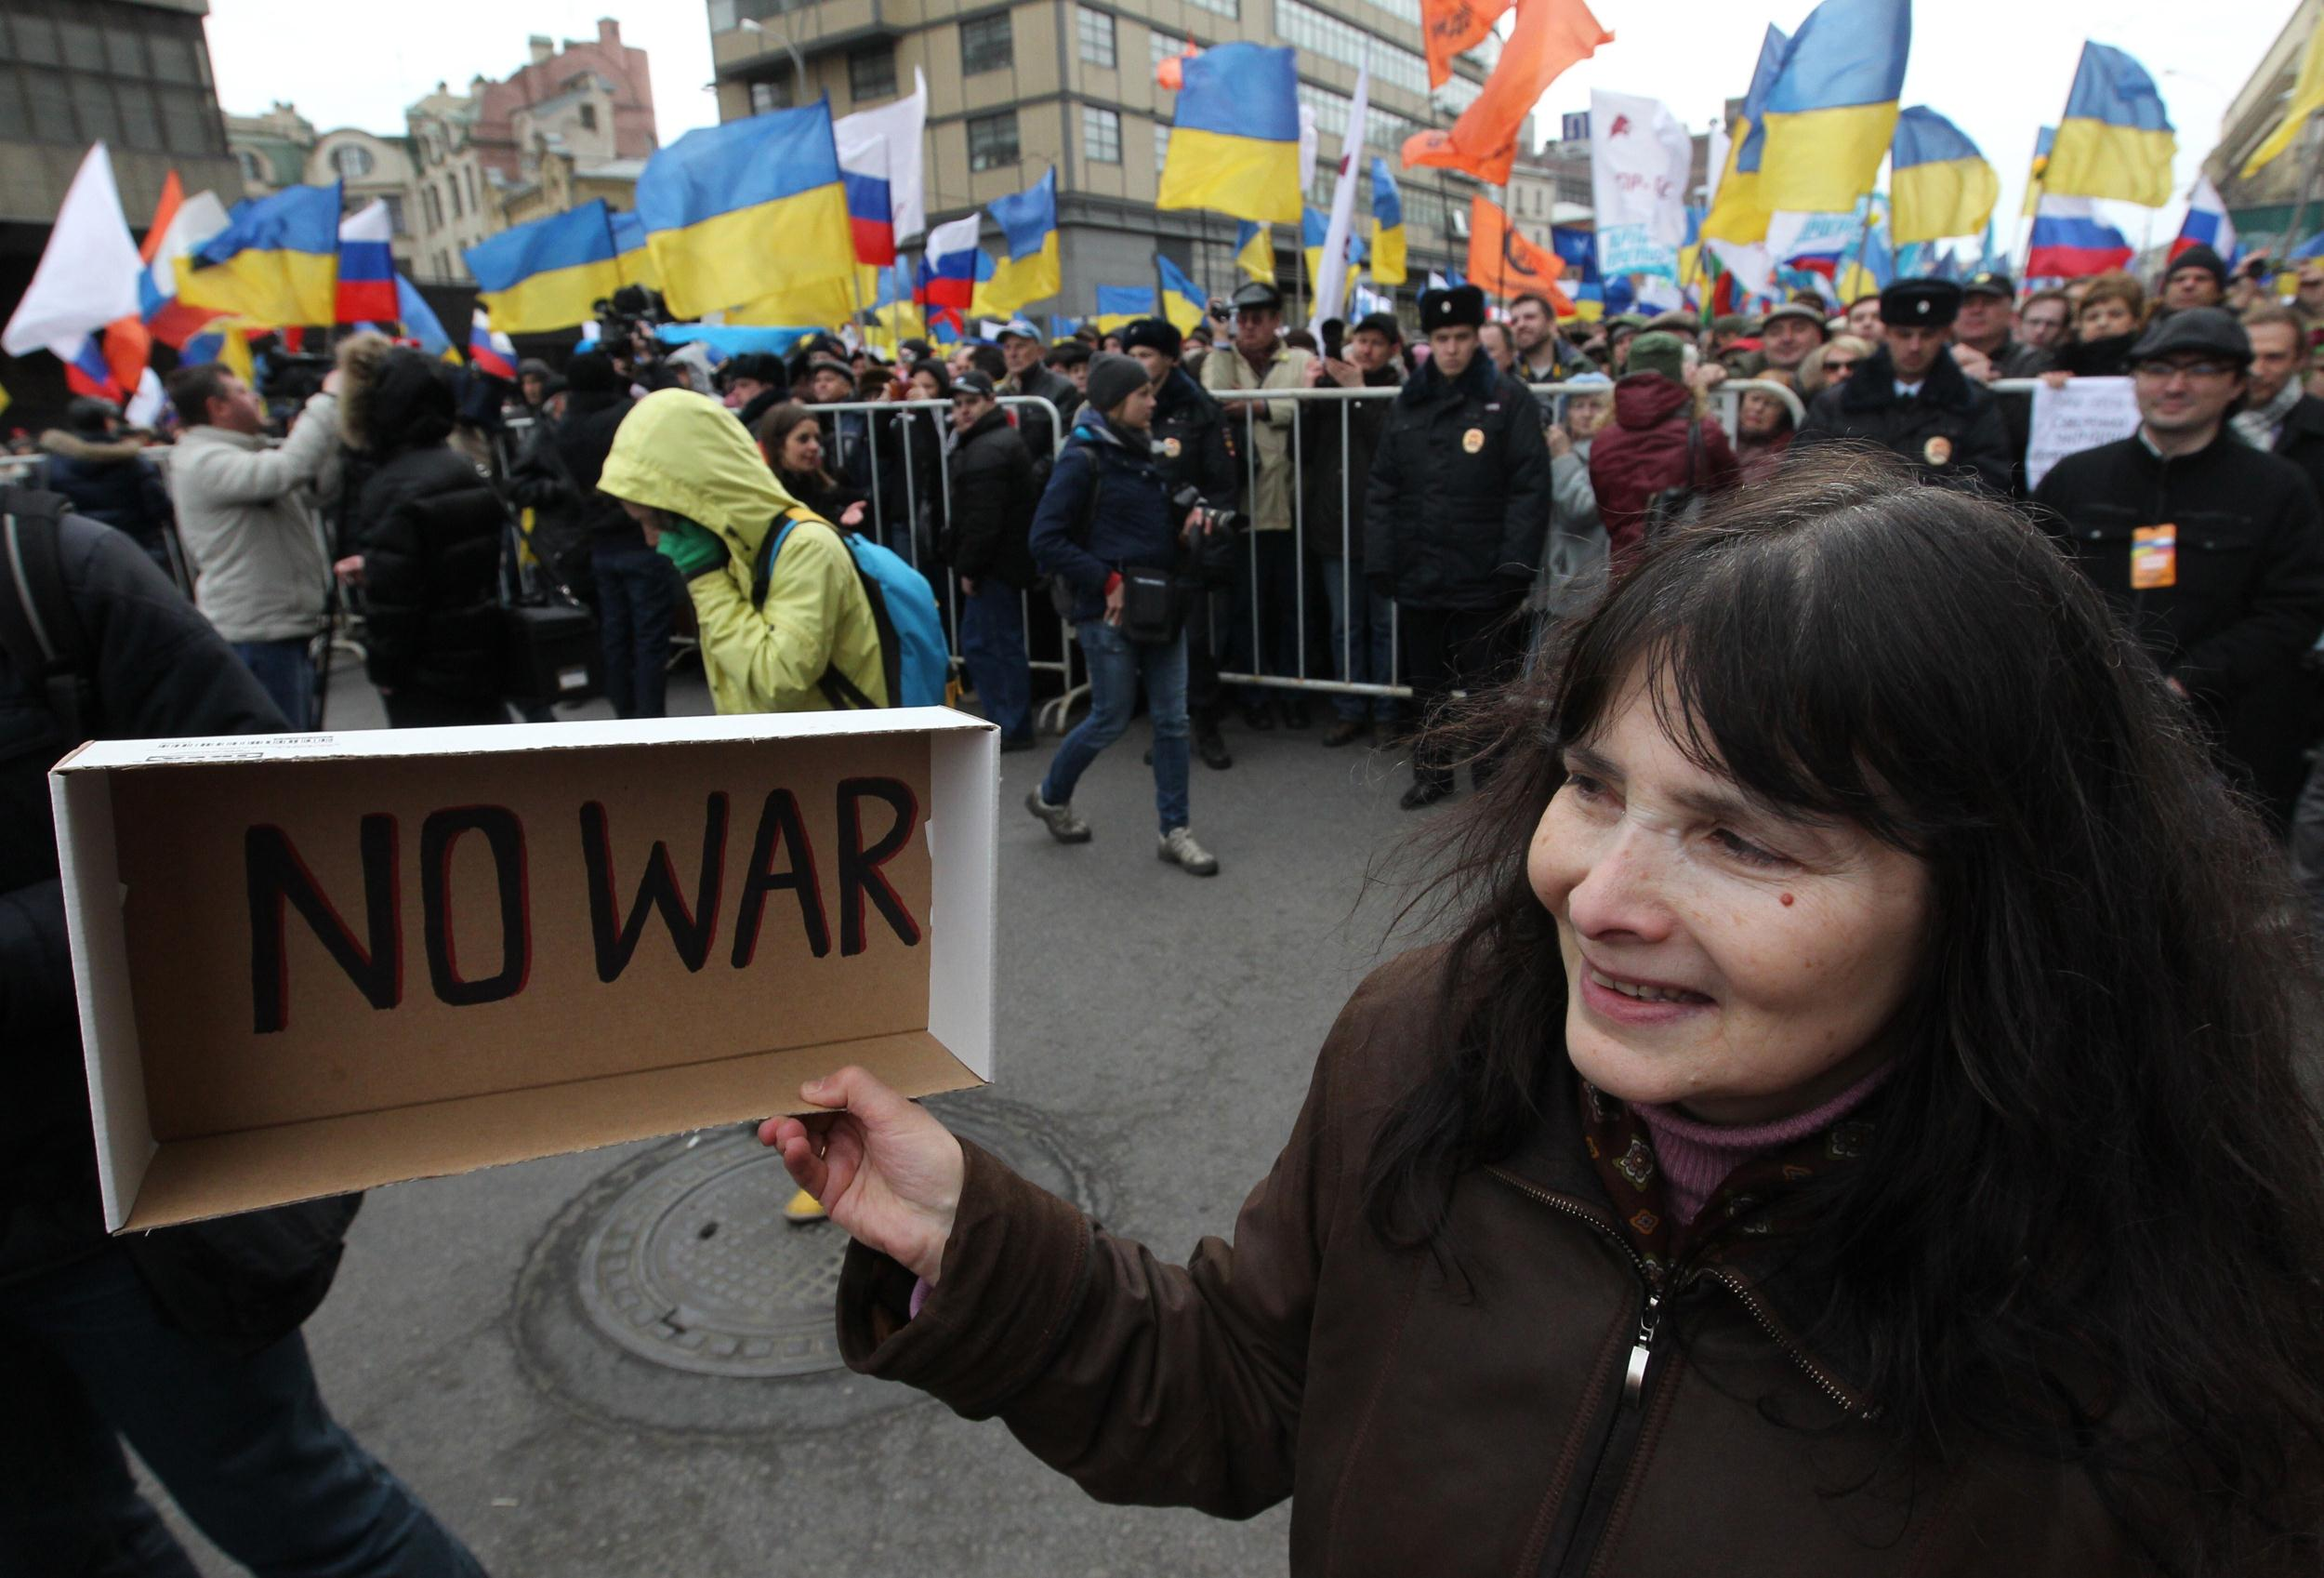 Image: Rallies Held In Moscow Ahead of Secession Vote